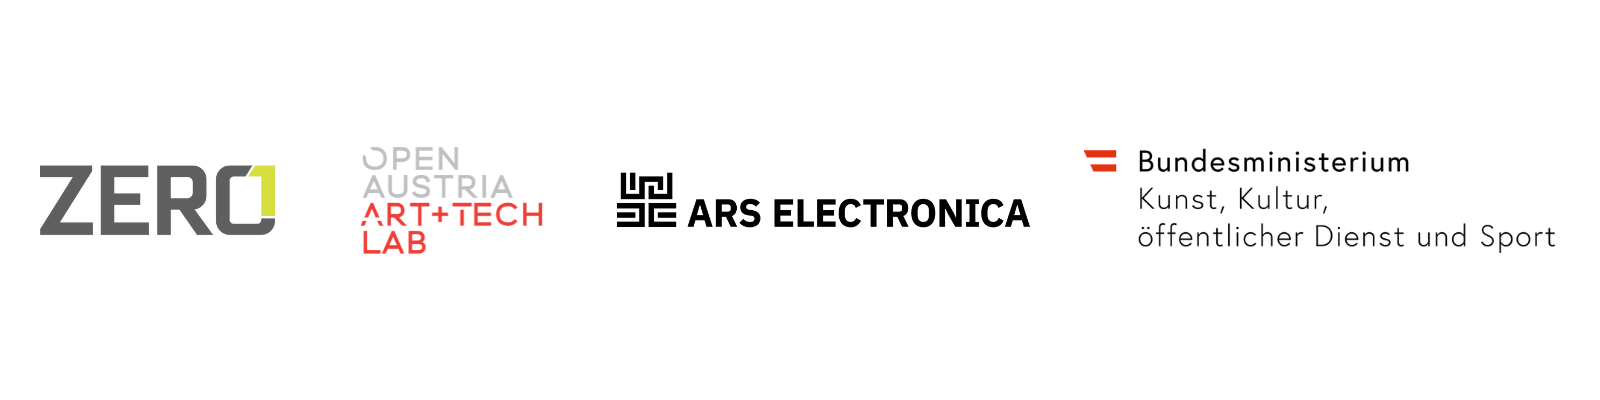 Impact Art AT project partner logos: ZERO1, Open Austria Art + Tech Lab, Ars Electronica, Austrian Federal Ministry for Arts, Culture, the Civil Service and Sport